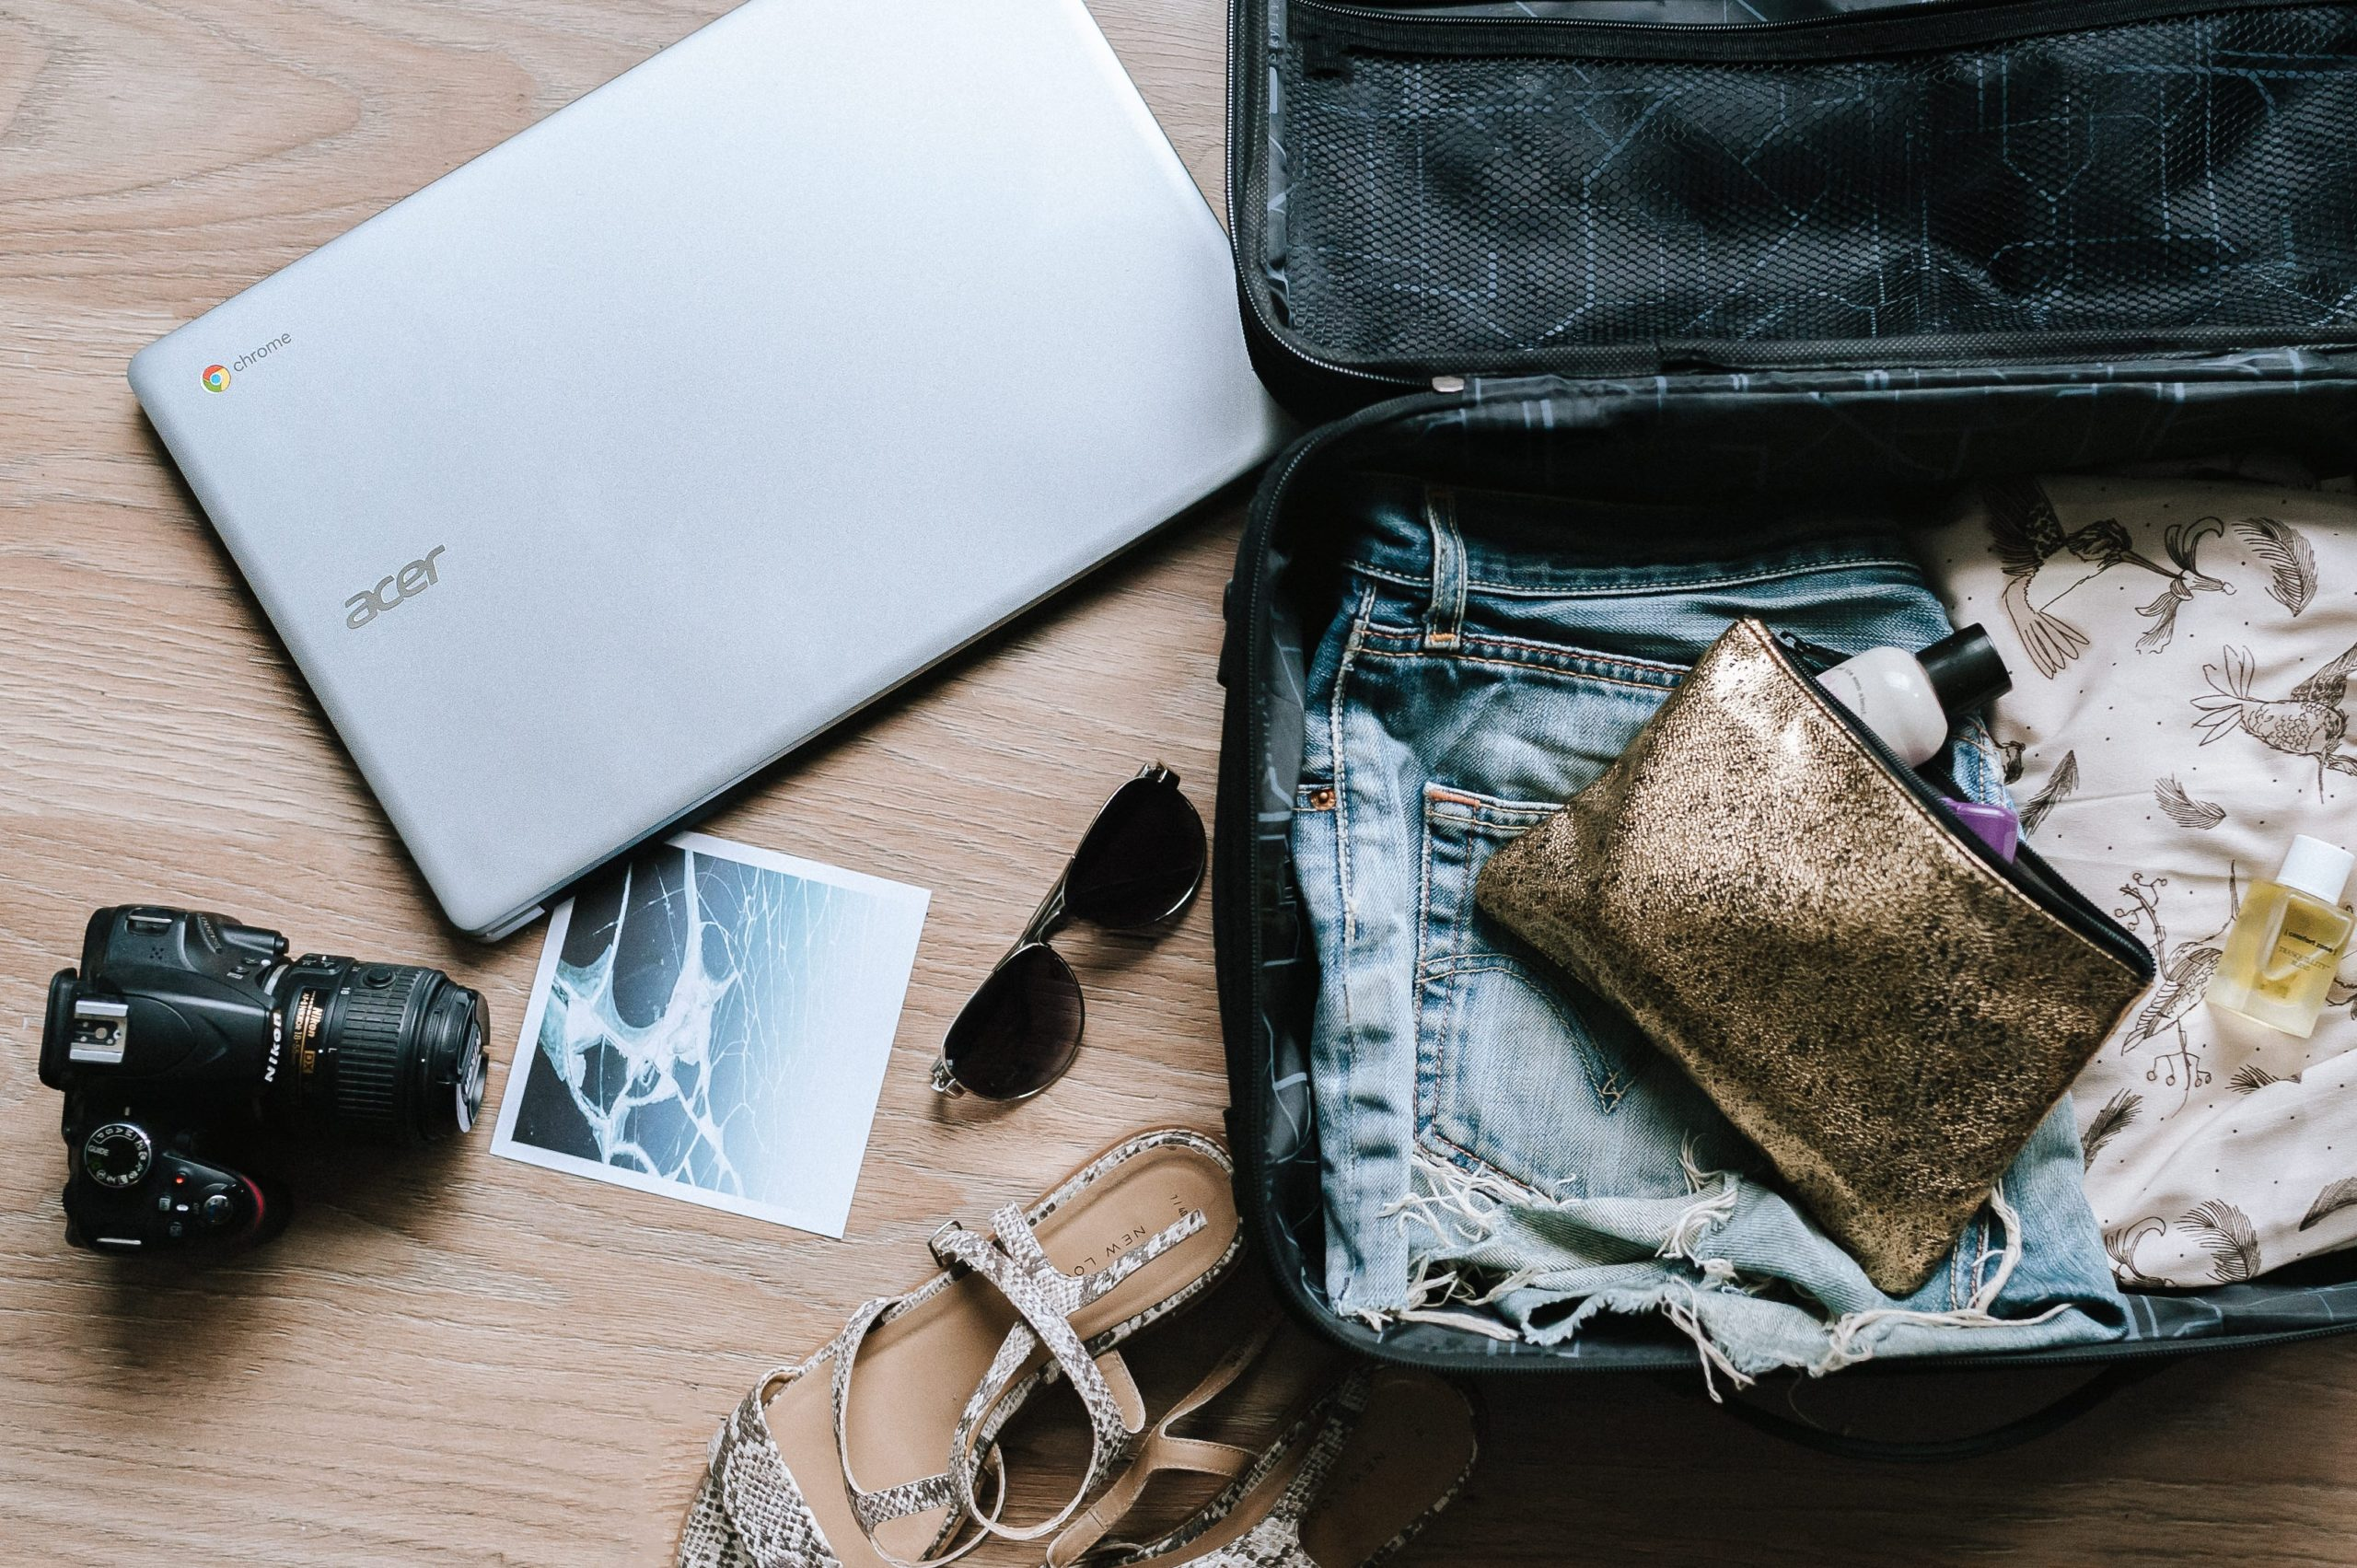 travel essentials packed in a suitcase